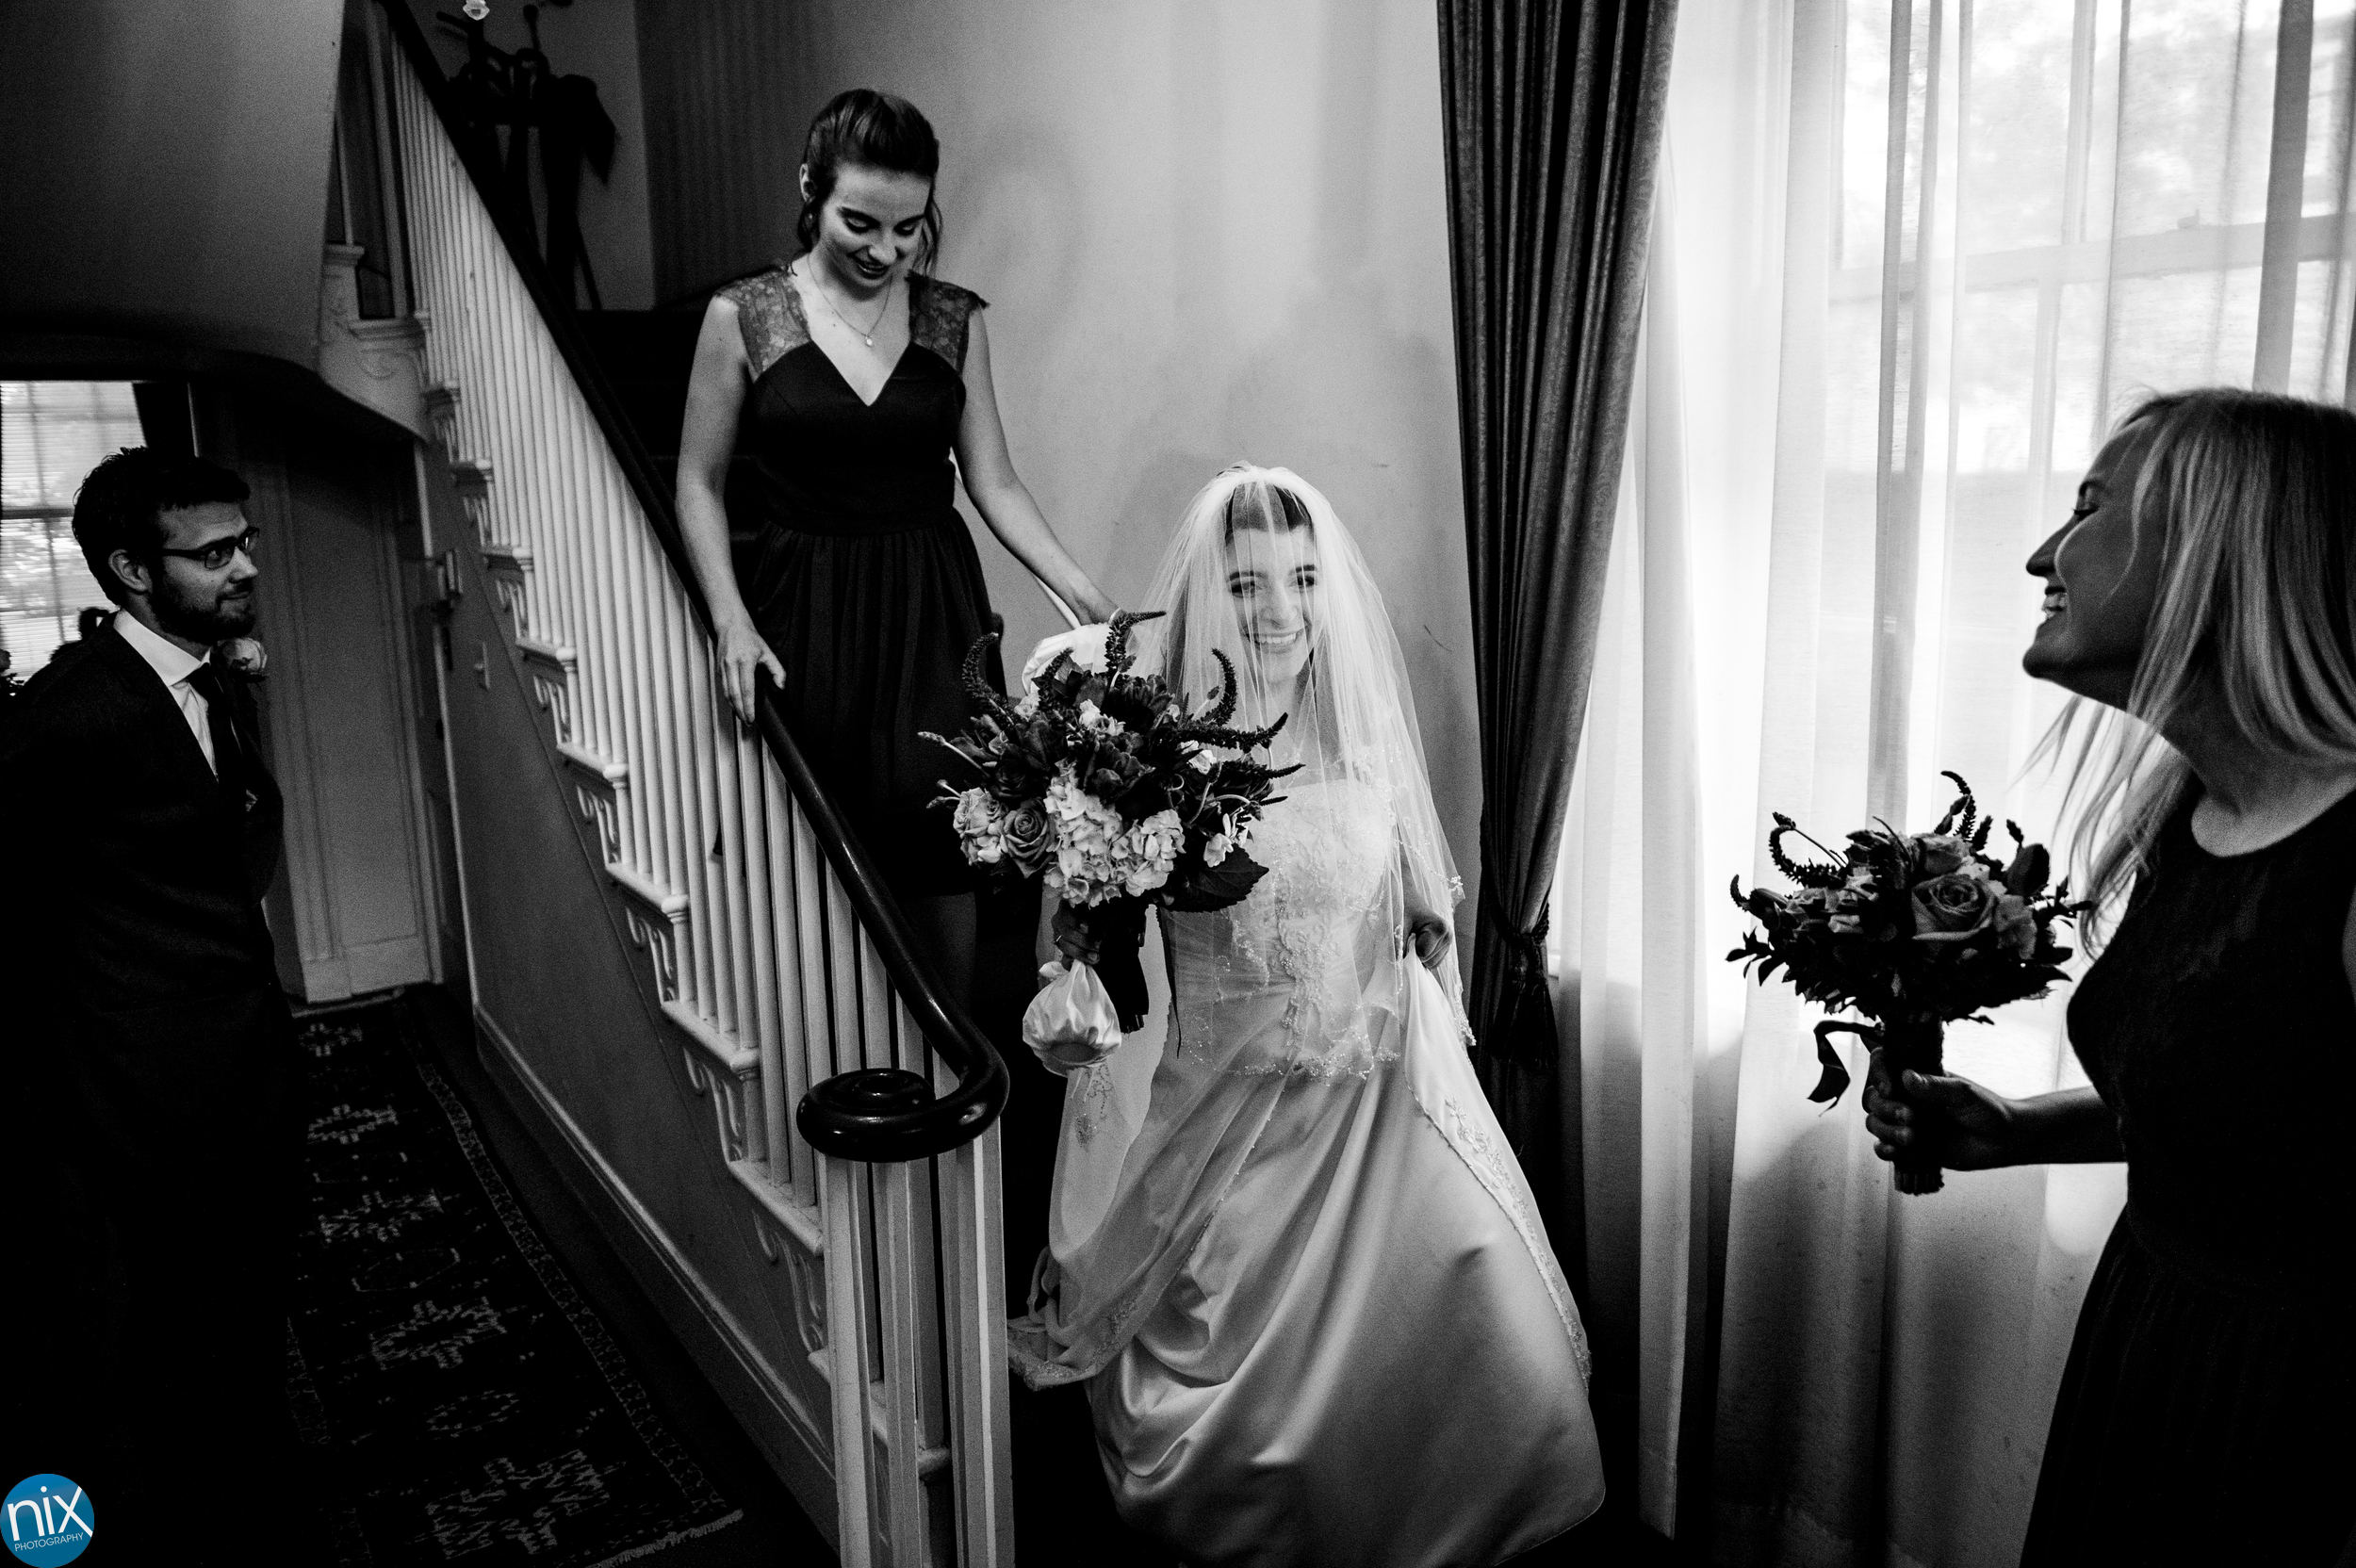 bride_comes_down_stairs_york_wedding_chapel.jpg